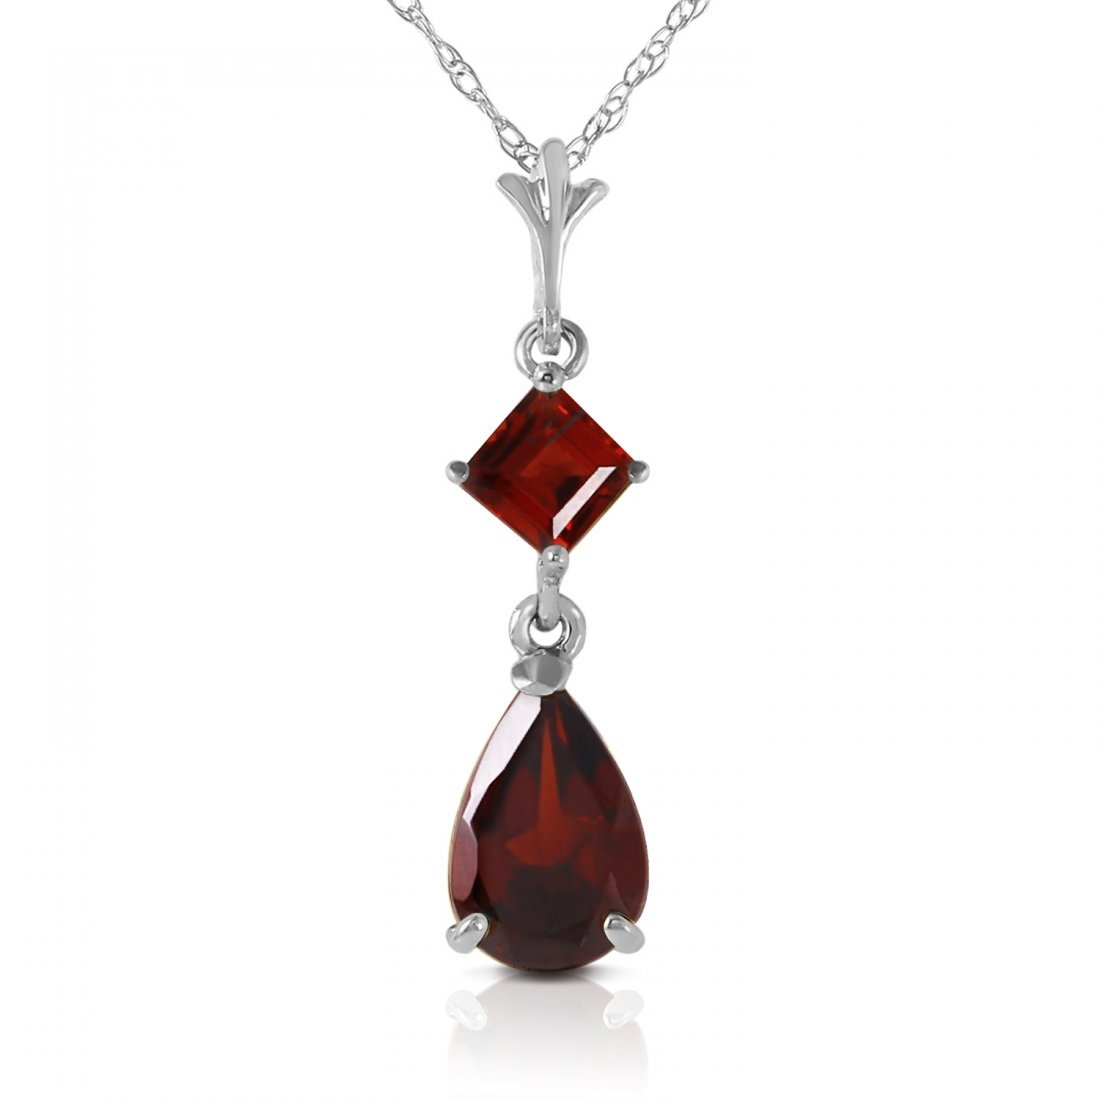 Genuine 2 ctw Garnet Necklace Jewelry 14KT White Gold -